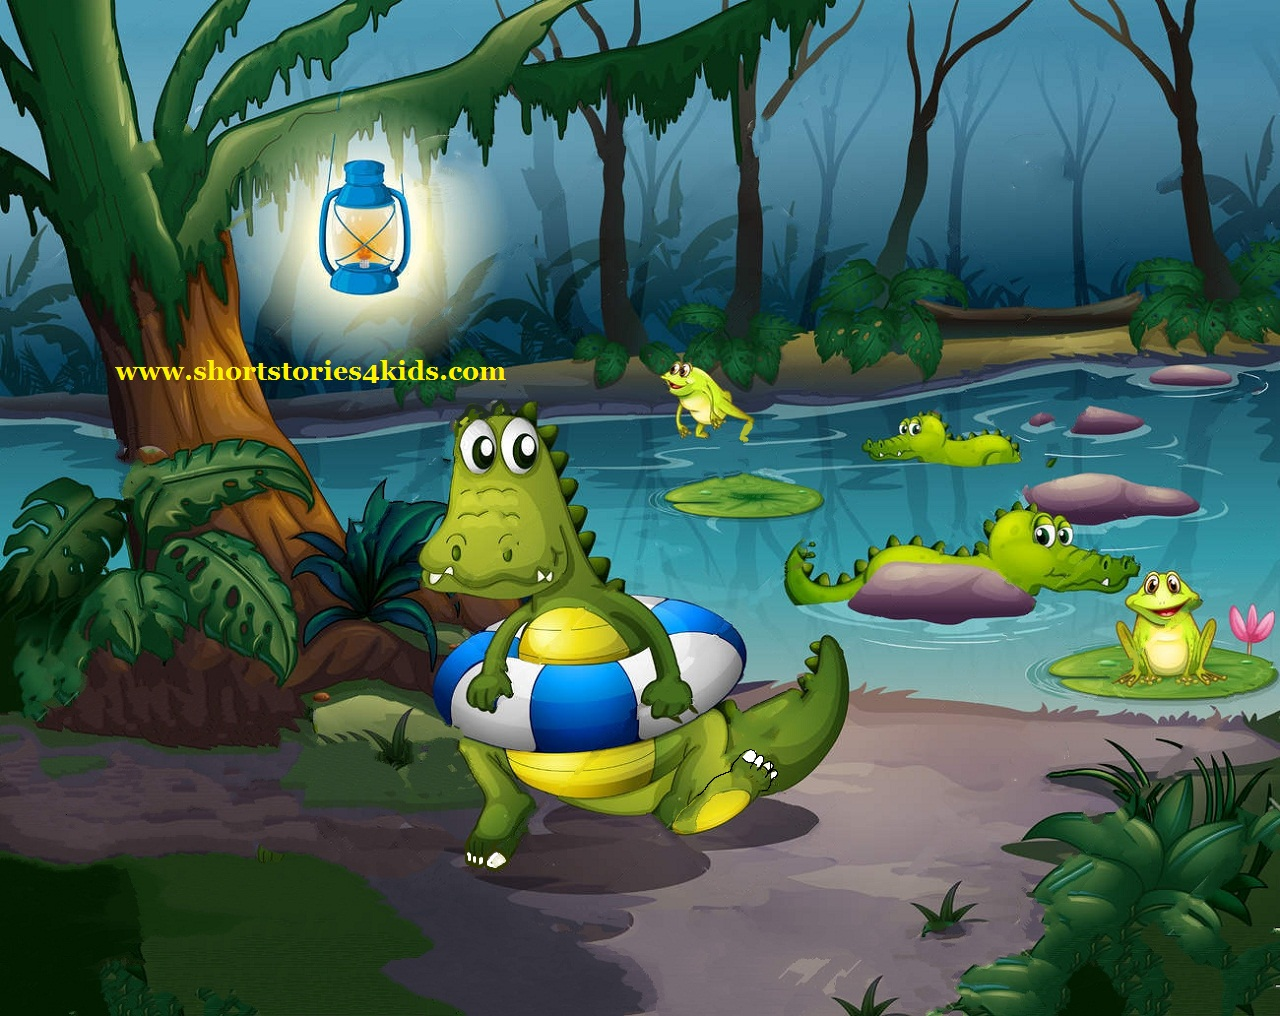 The Baby Crocodile and Friends - English Short Stories for Kids